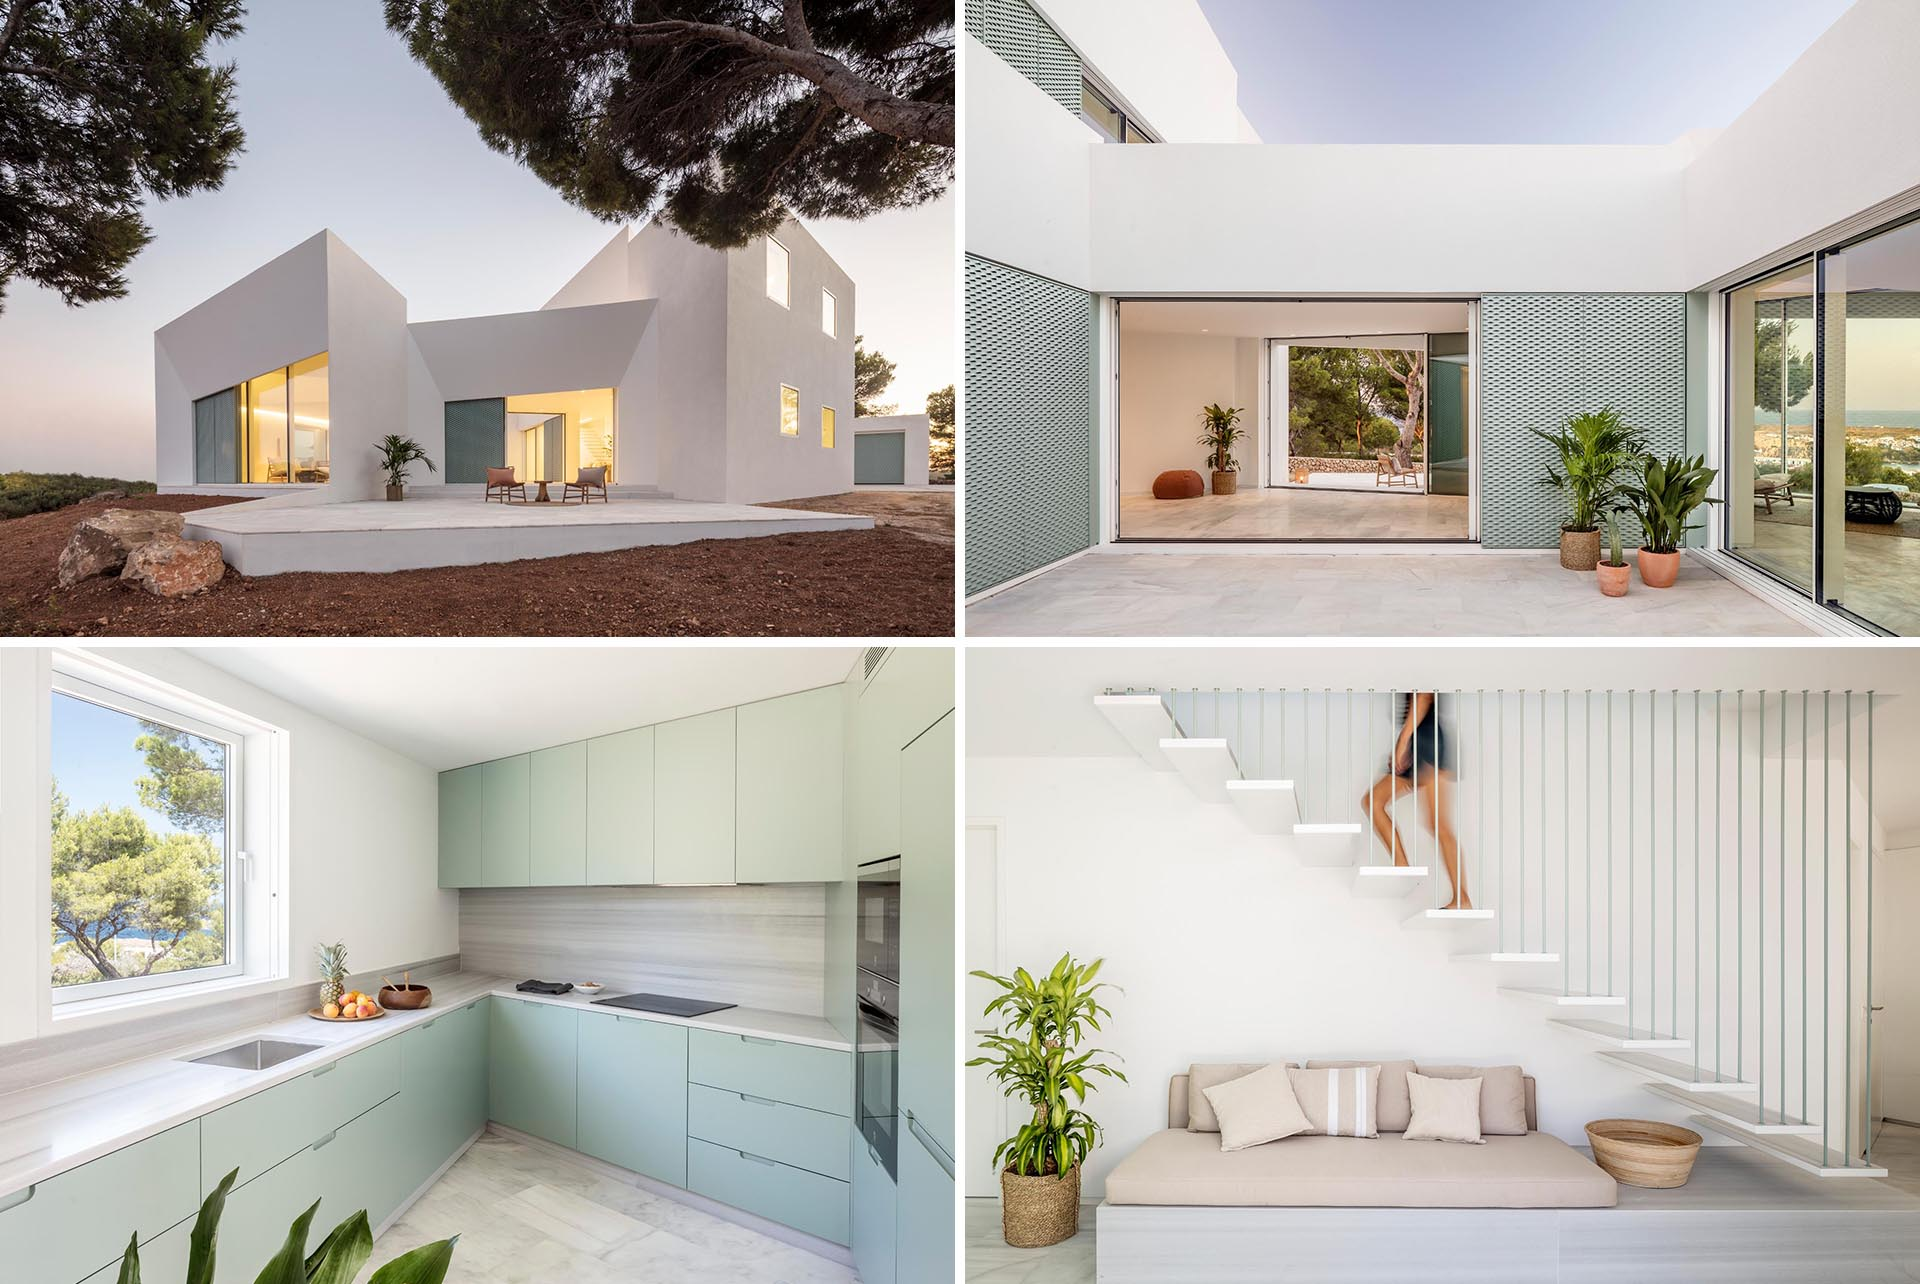 A modern white home with matching interior, has pastel turquoise design elements throughout.